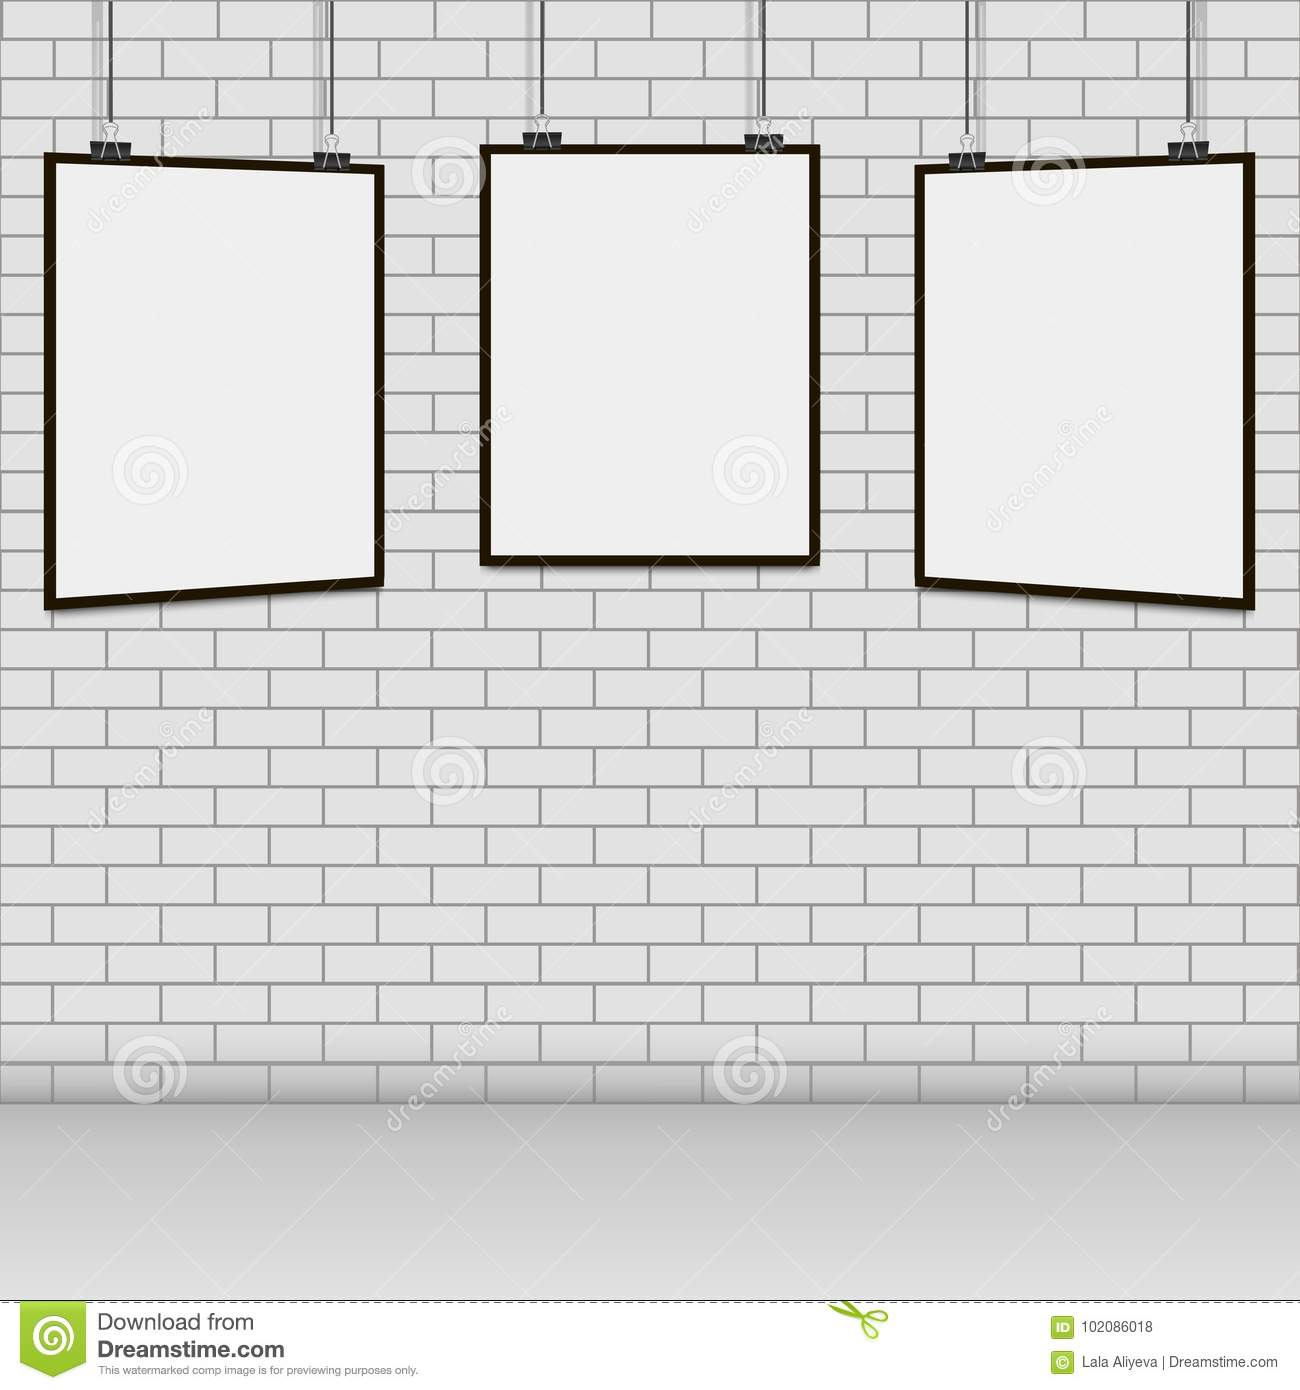 Realistic Blank Frame Hanging On Brick Wall Stock Illustration ...